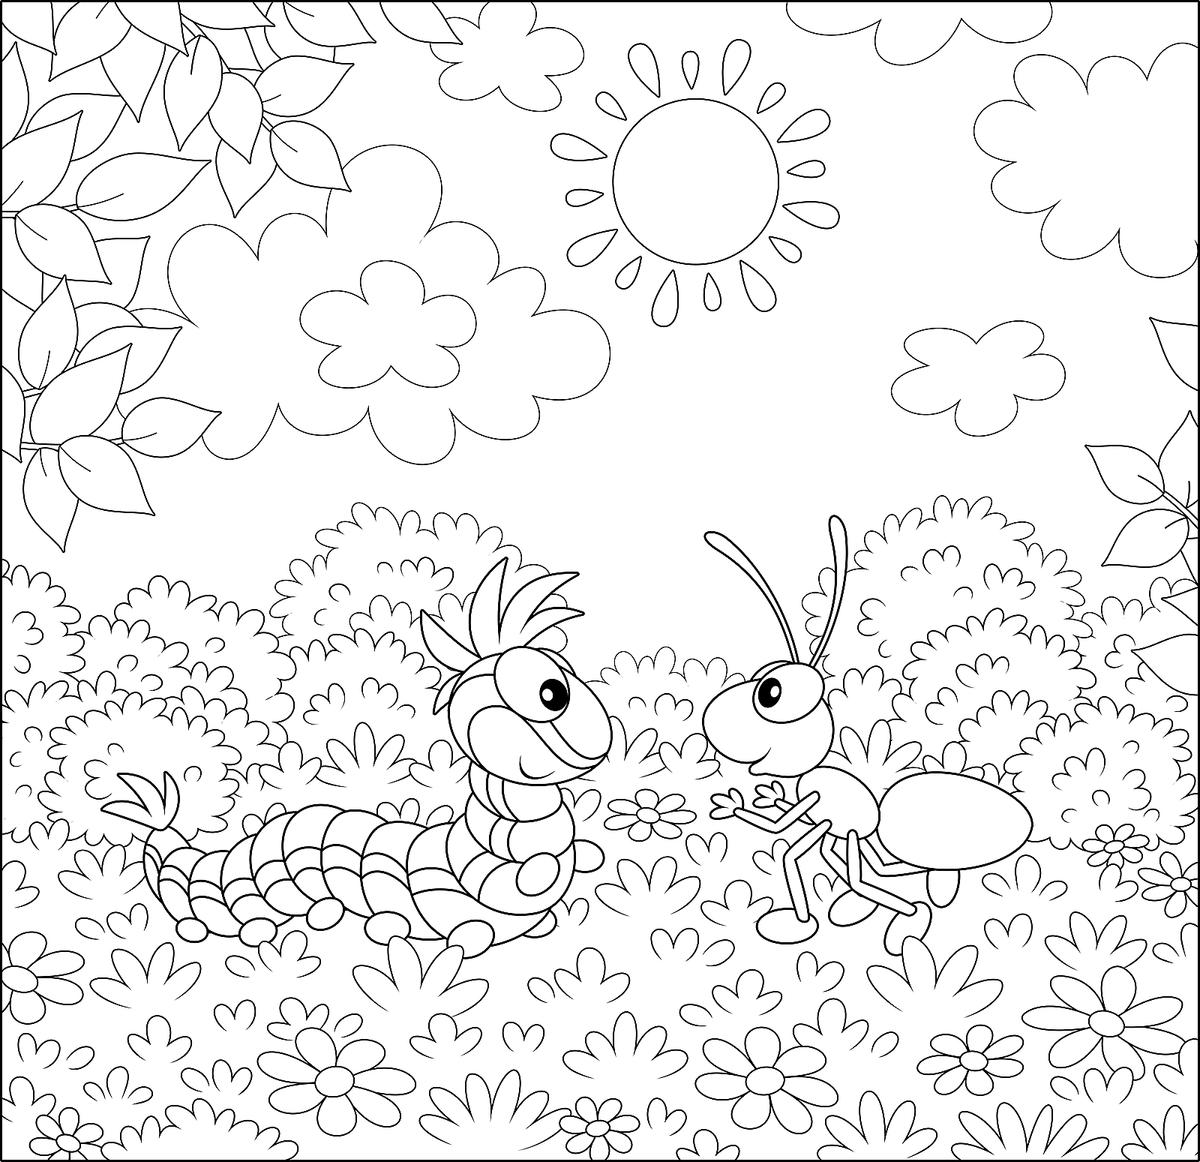 Insect Coloring Pages: Free & Fun Printable Coloring Pages ...